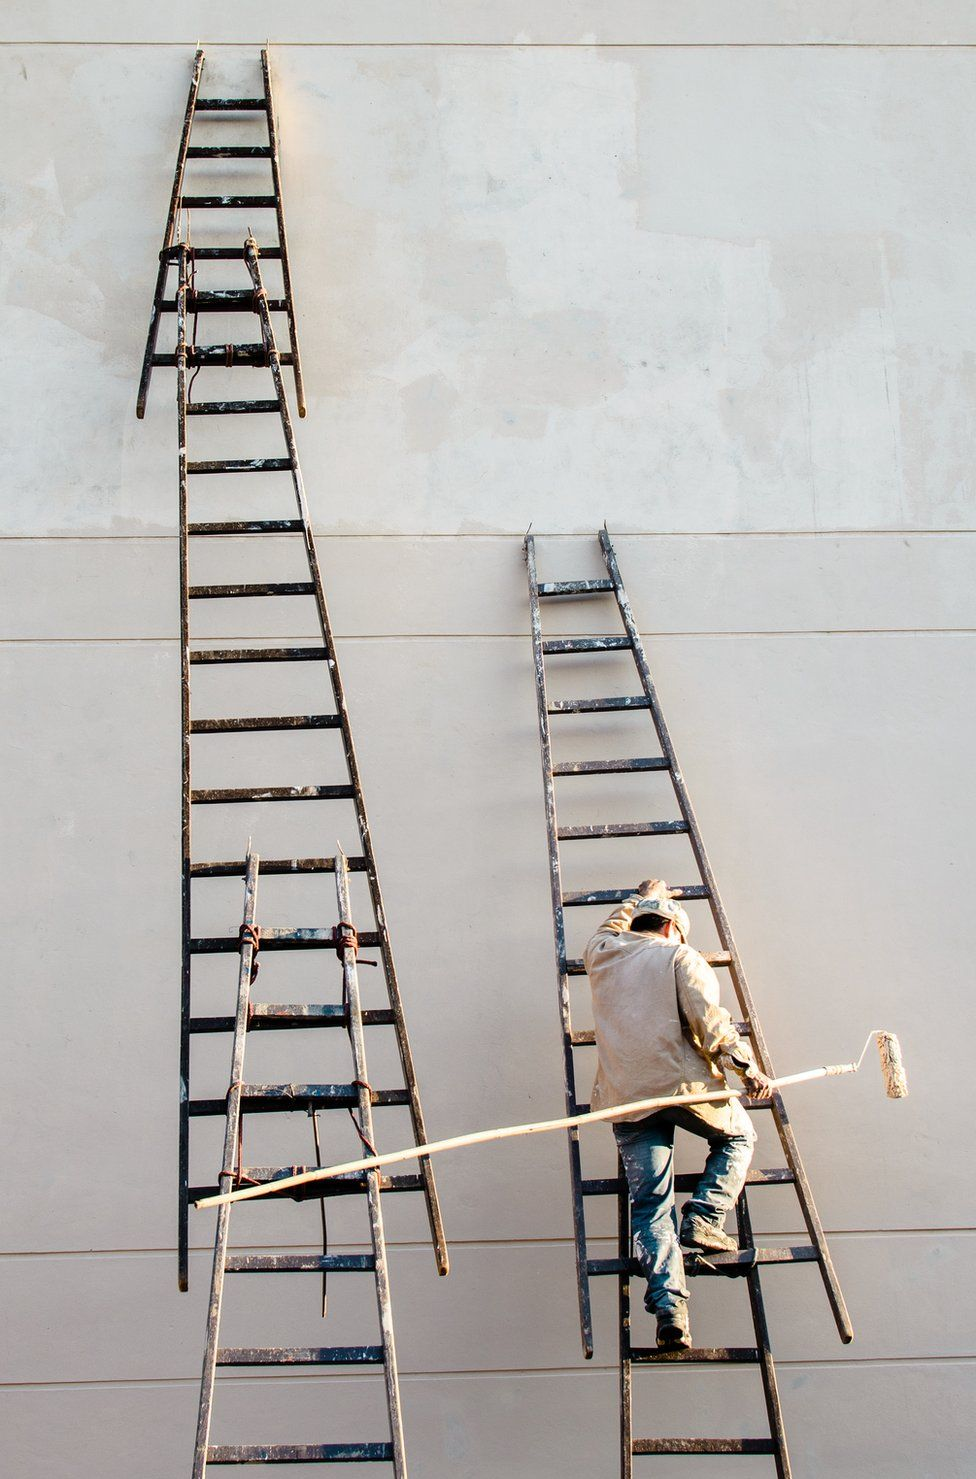 A man climbs roughly tied together ladders